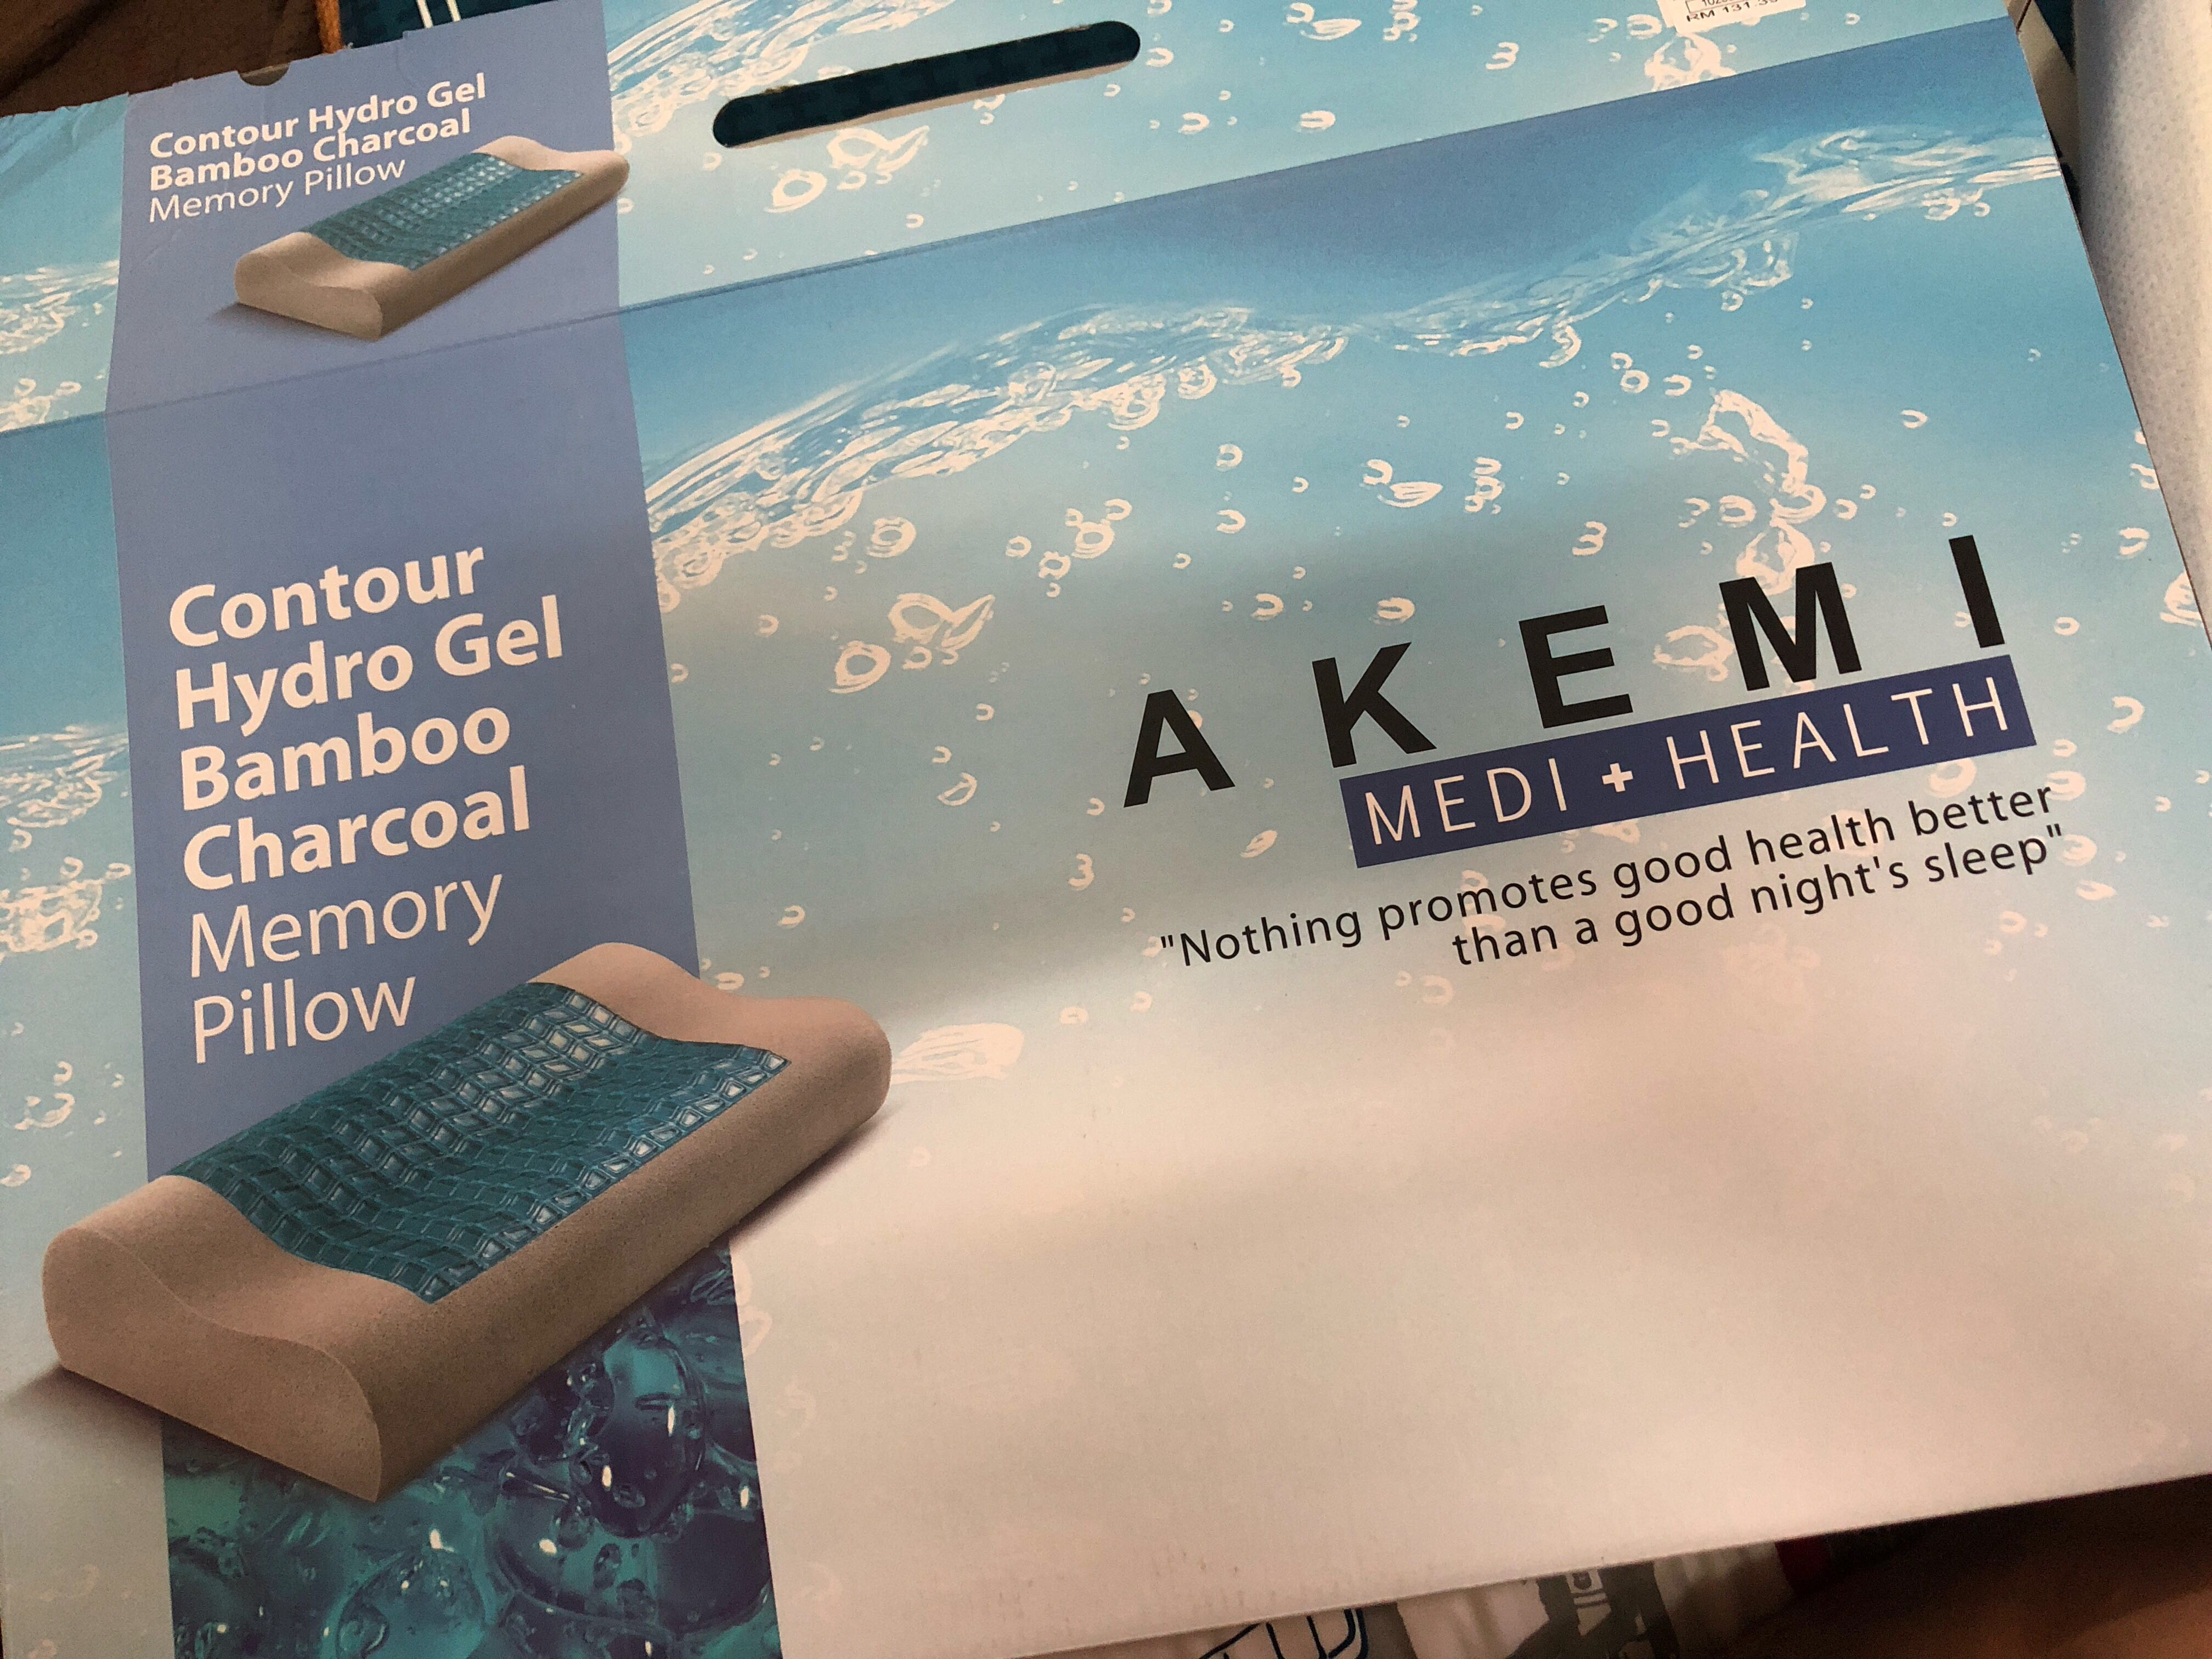 Akemi Memory Pillow Medi Health Home Amp Furniture Others